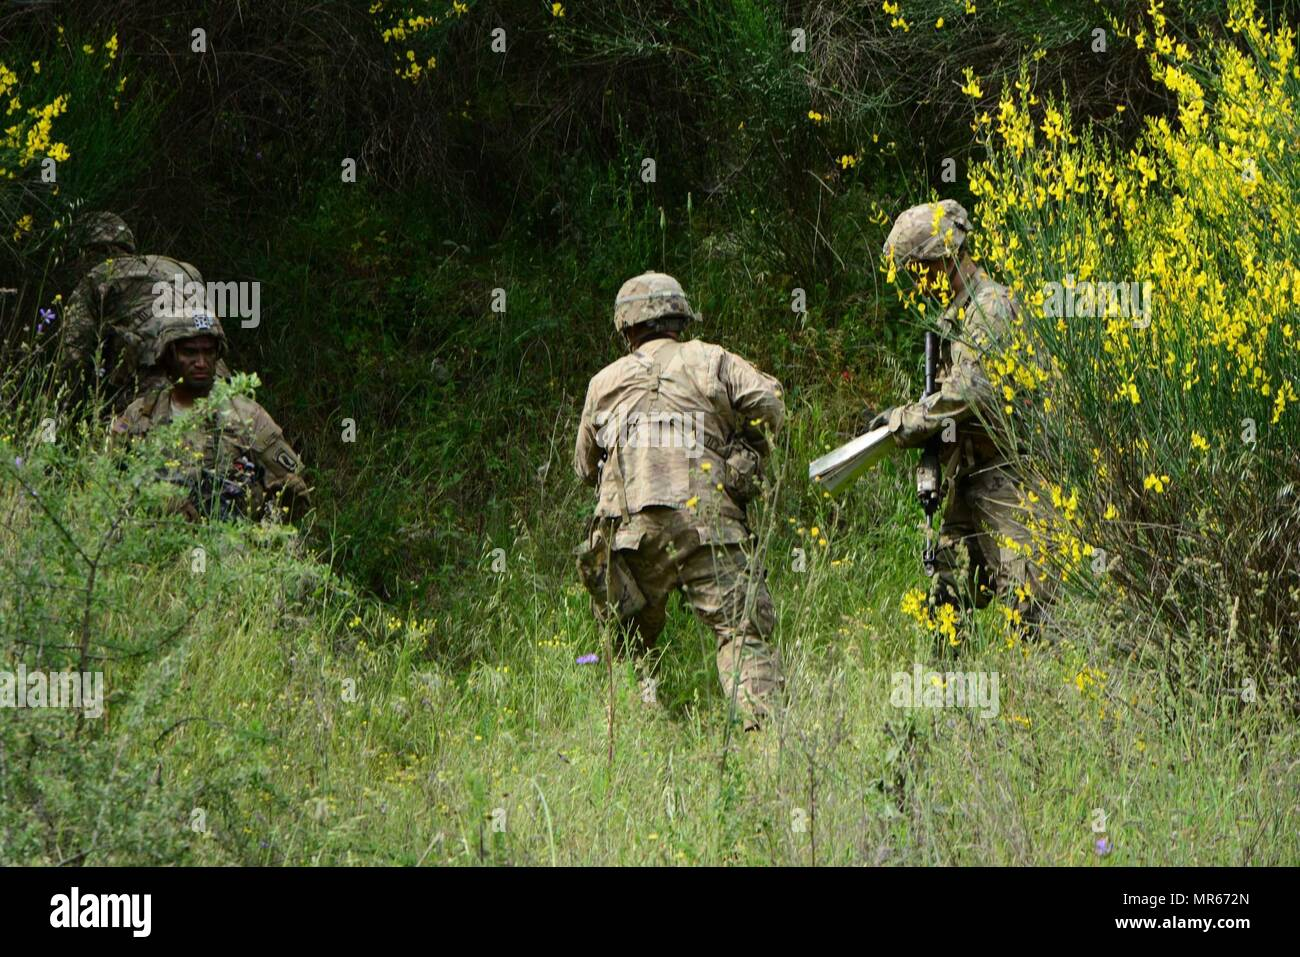 U.S. paratroopers assigned to 1st Battalion, 503rd Infantry Regiment, 173rd Airborne Brigade, are conducting ambush training with 1st Paratrooper Commando Brigade of the Greek Army at Camp Redina, Greece, during the Exercise Bayonet Minotaur, 18 May 2017. Bayonet Minotaur is a bilateral training exercise between U.S. Soldiers assigned to 173rd Airborne Brigade and the Greek Armed Forces, focused on enhancing NATO operational standards and developing individual technical skills. The 173rd Airborne Brigade is the U.S. Army's Contingency Response Force in Europe, providing rapidly-deploying force - Stock Image